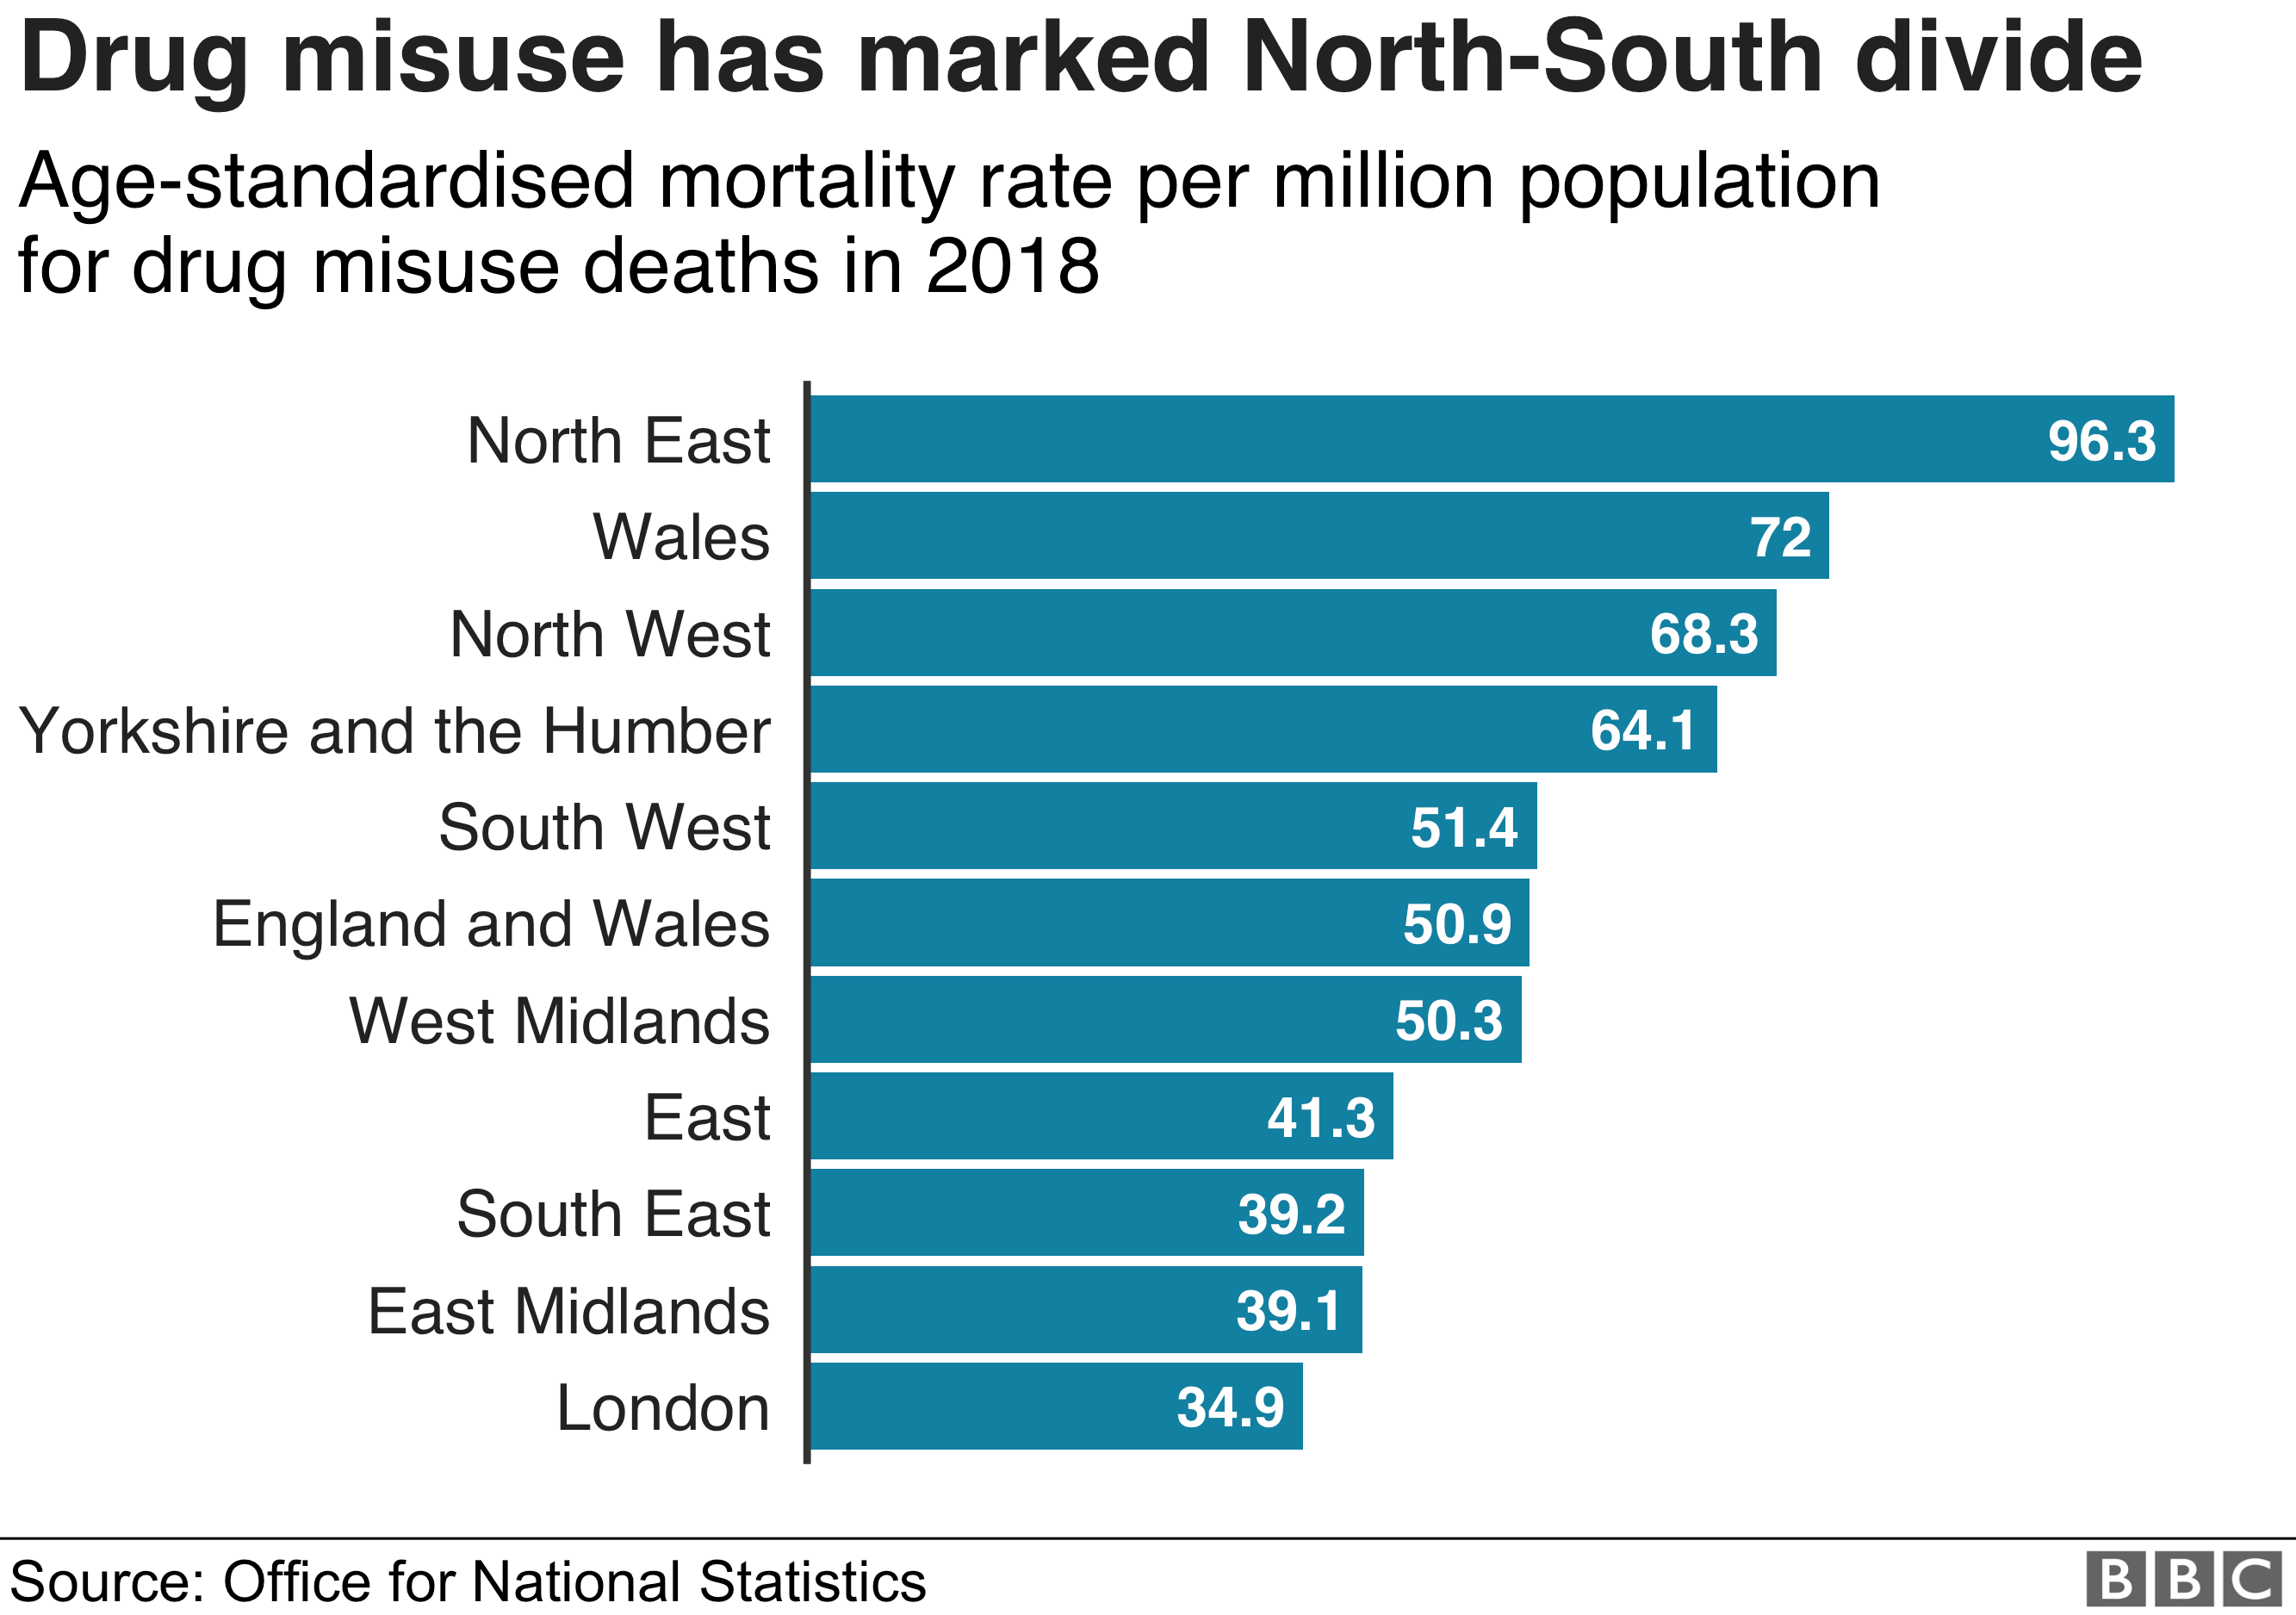 Chart showing mortality rates for drug misuse deaths in England and Wales by region